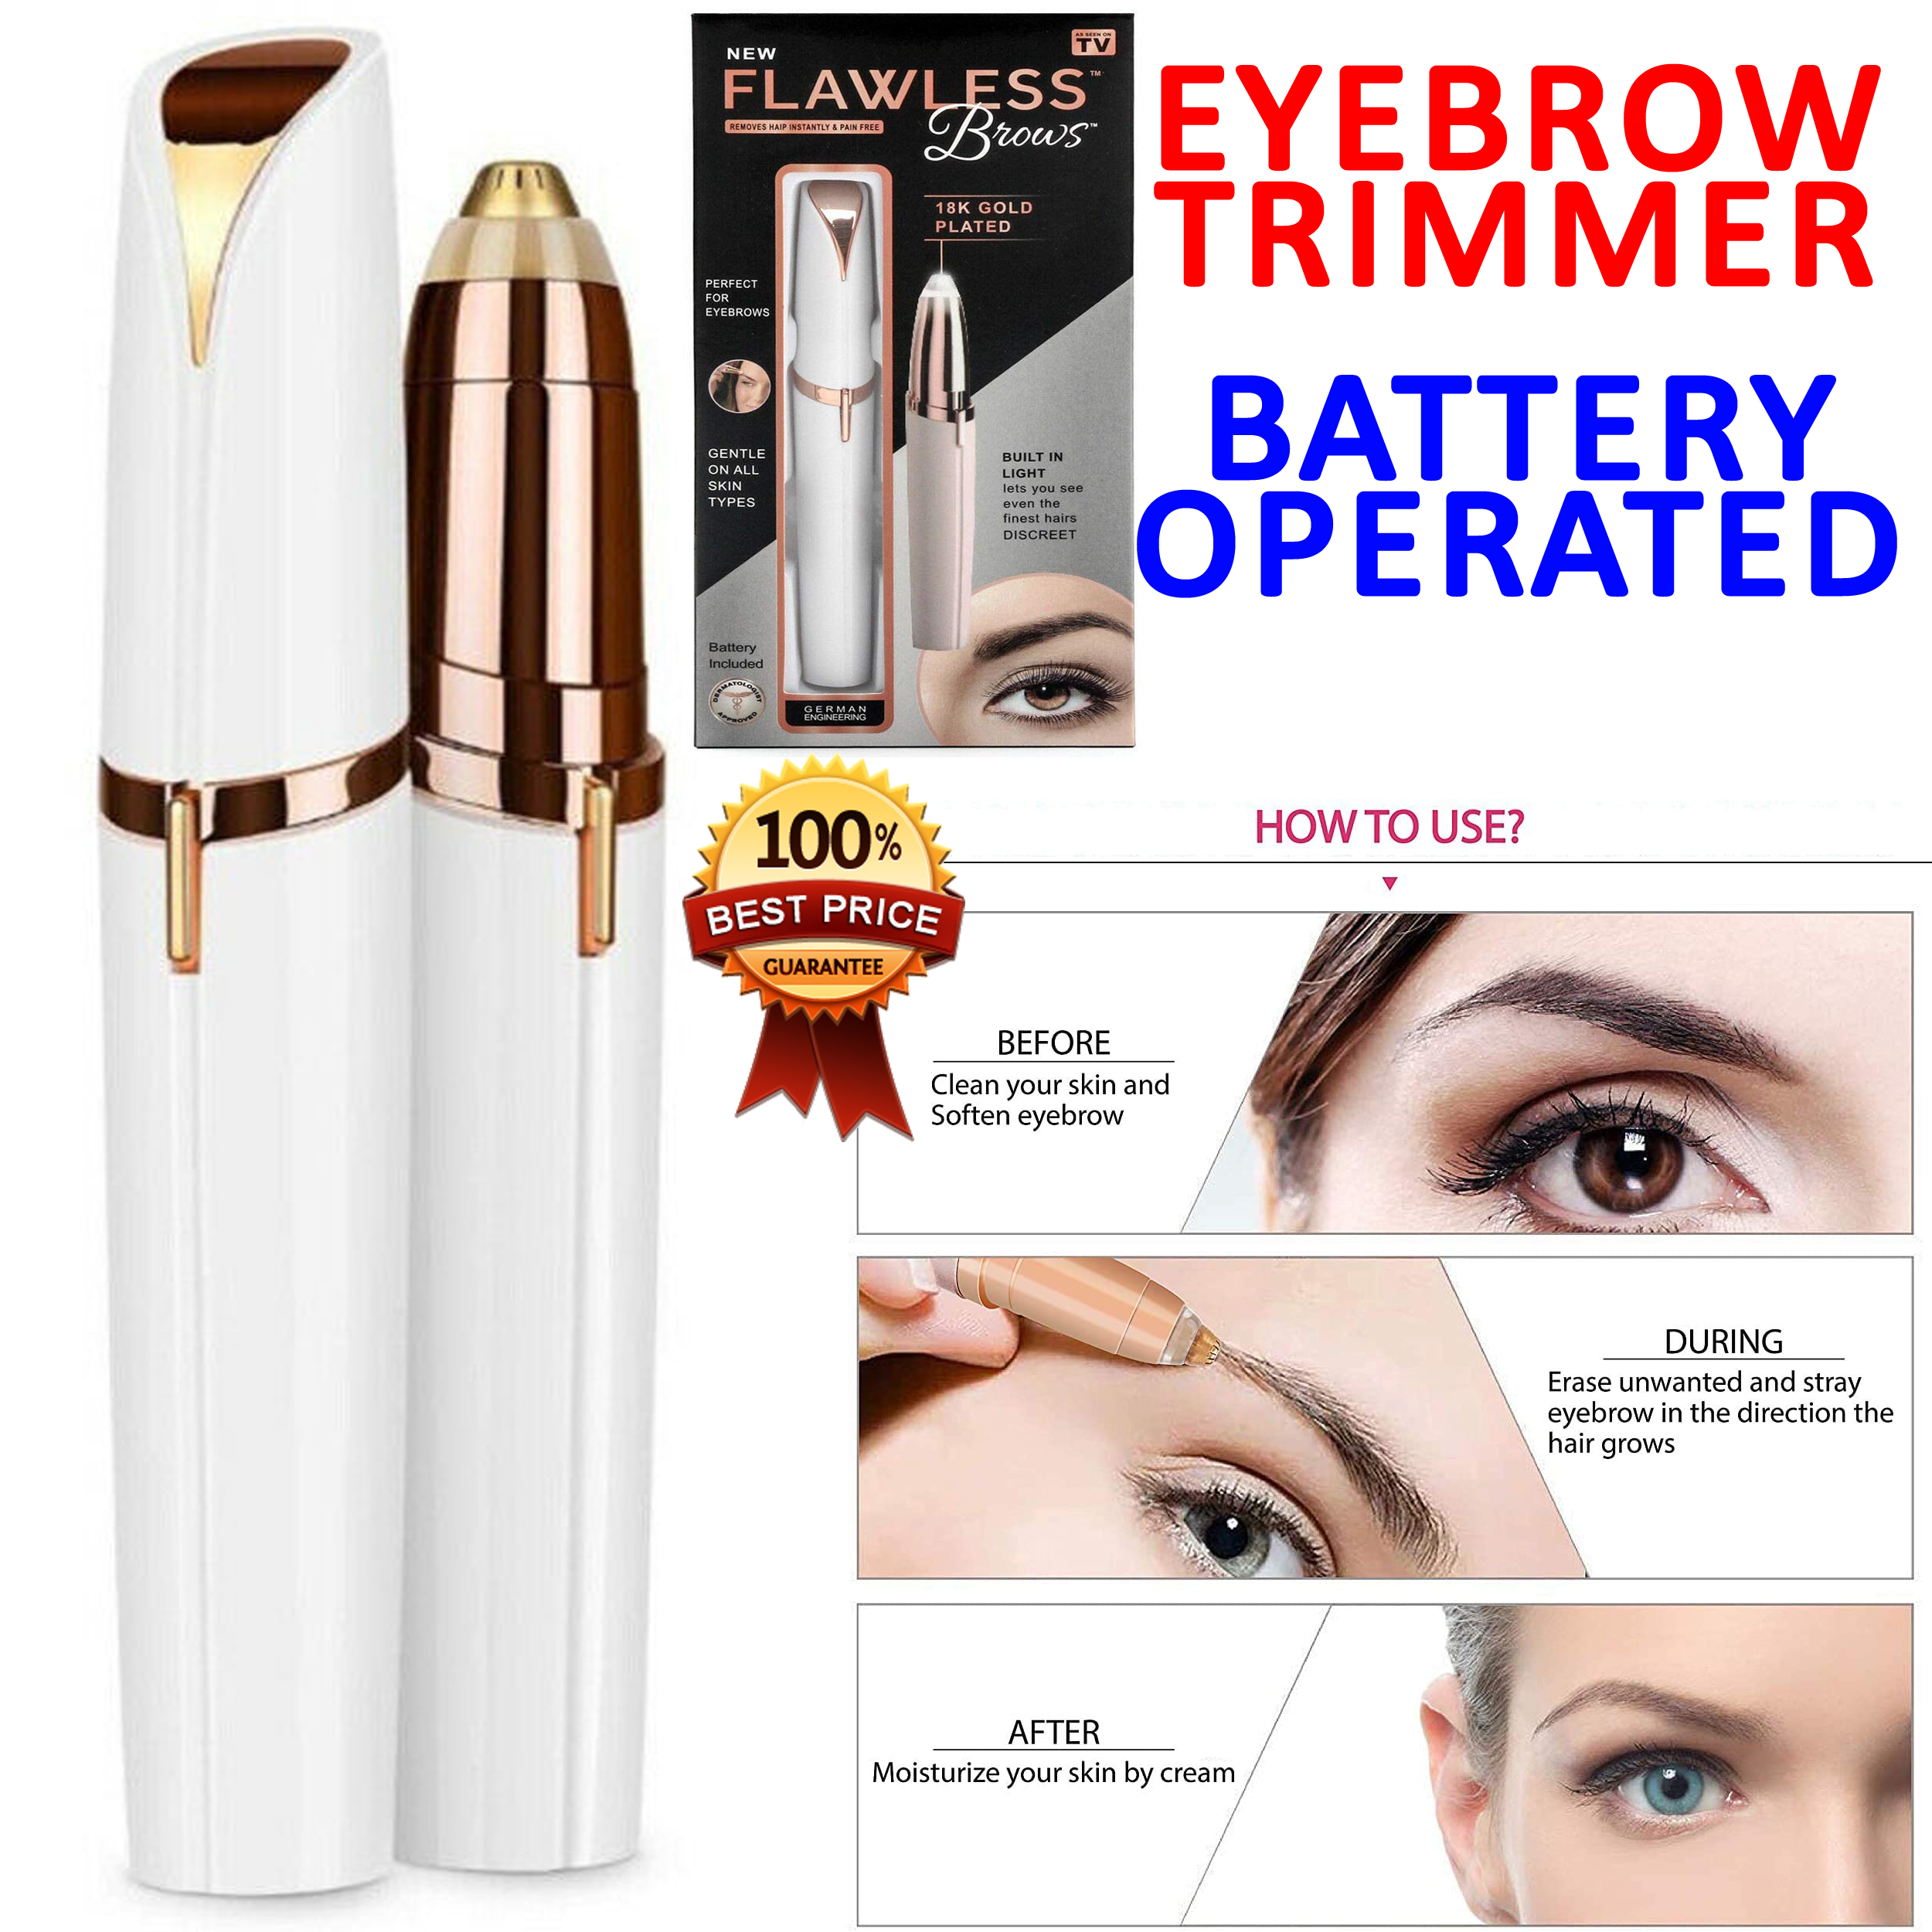 Flawless Brows eyebrow trimmer Shaper Facial hair Remover Professional Mini Electric Female Pen Shaving machine Ladies Instant Hair trimming machine Female Eyebrows Shaving machine Travel Essentials Face Care tool Best Genuine High Quality Painless shaver